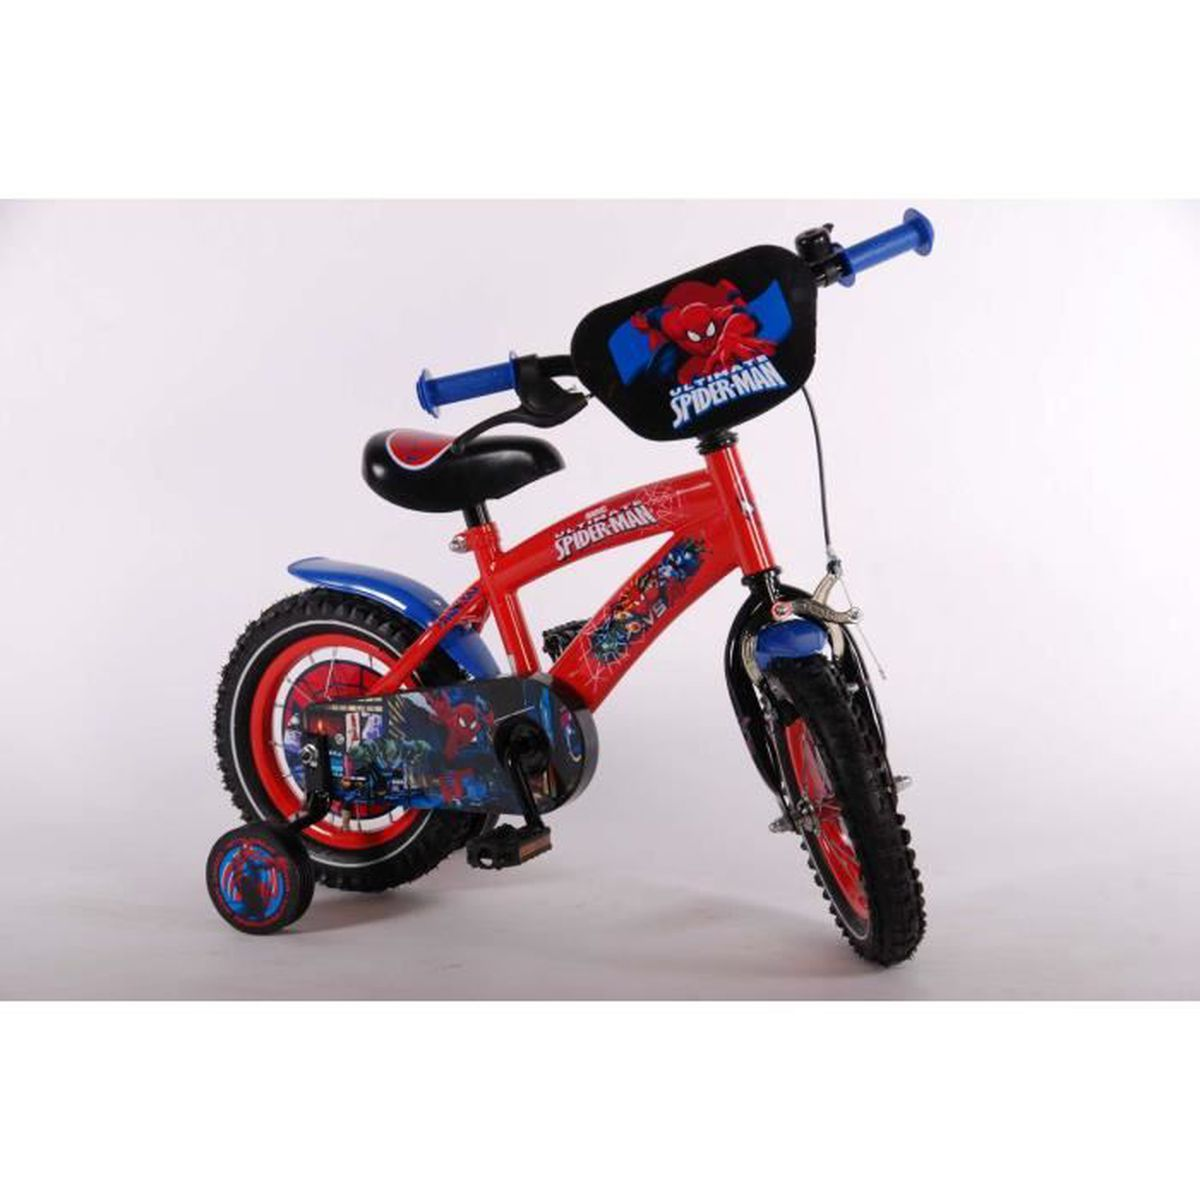 bicyclette enfant spider man roues de 12 pouces avec rouge. Black Bedroom Furniture Sets. Home Design Ideas